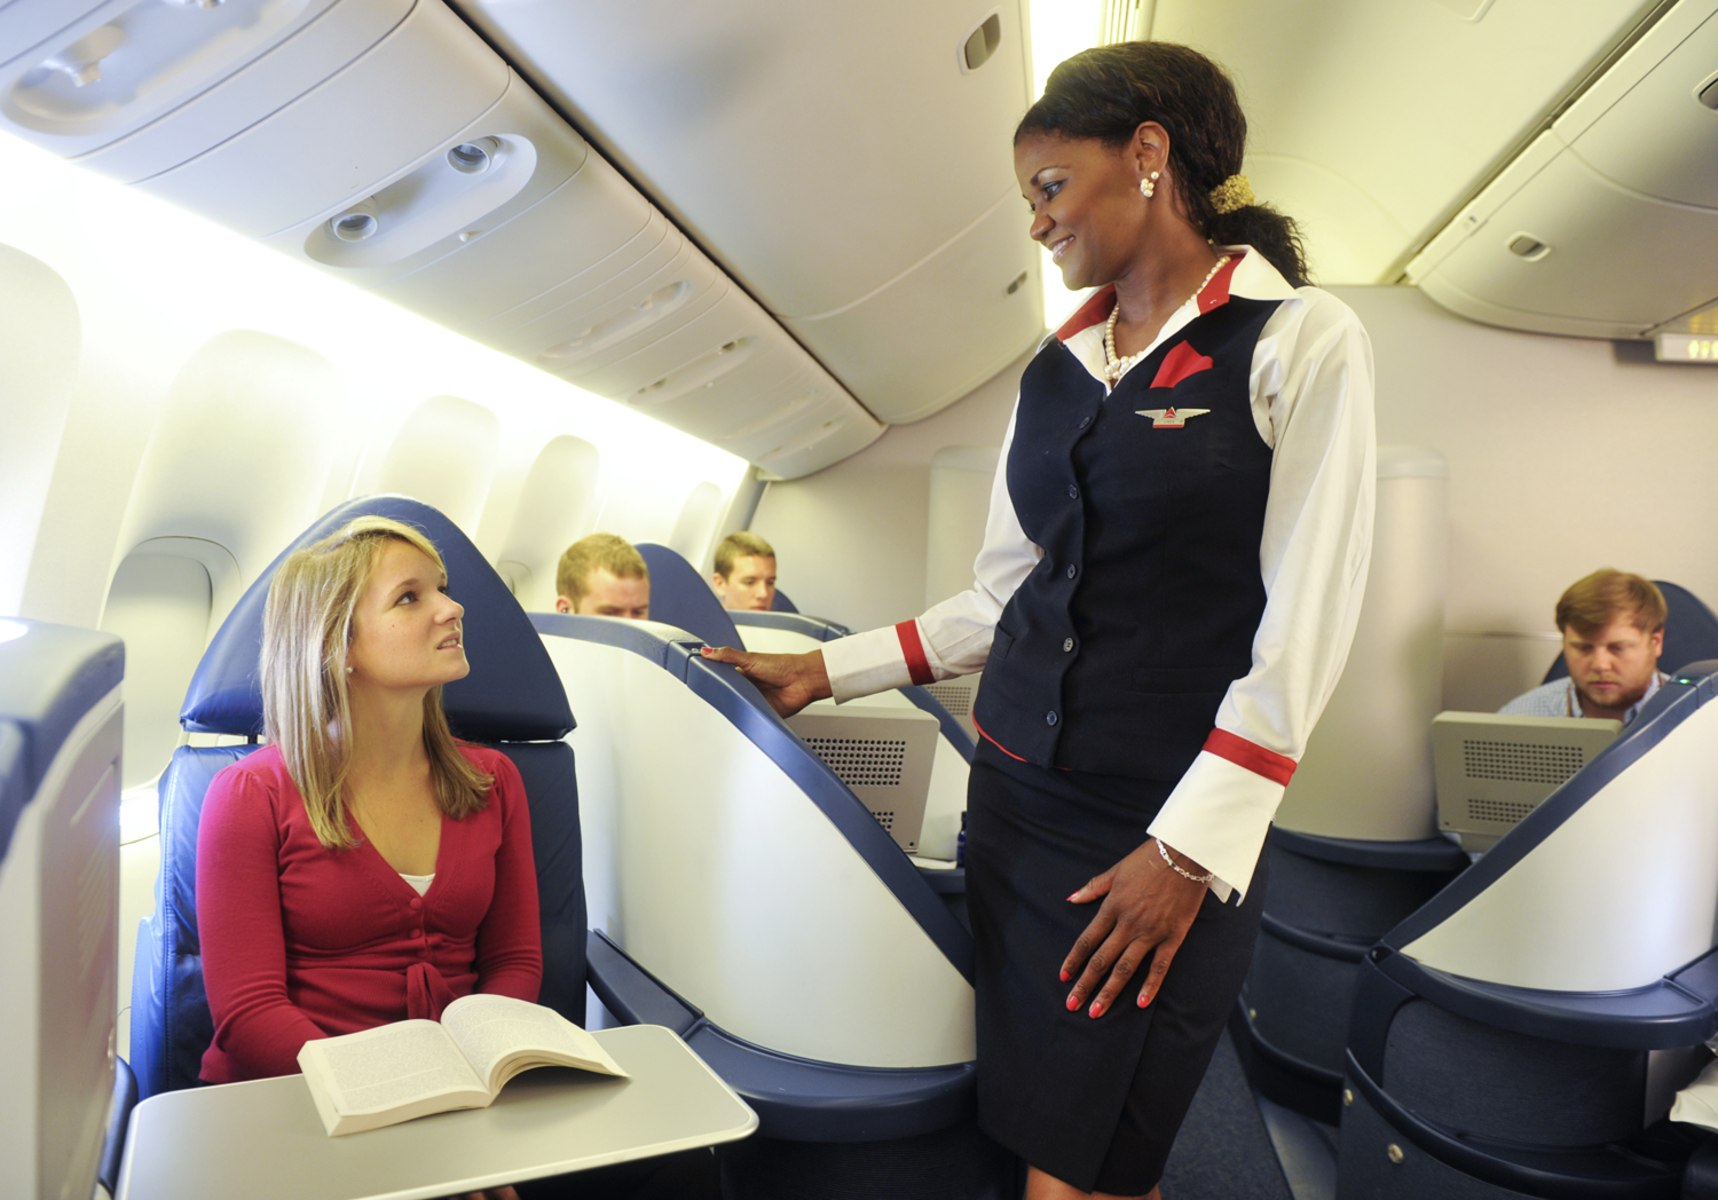 do flight attendants hook up with passengers Airline insider carrie a trey shares some of the special codes that tell flight attendants what flight attendants know about passengers a heads-up about.